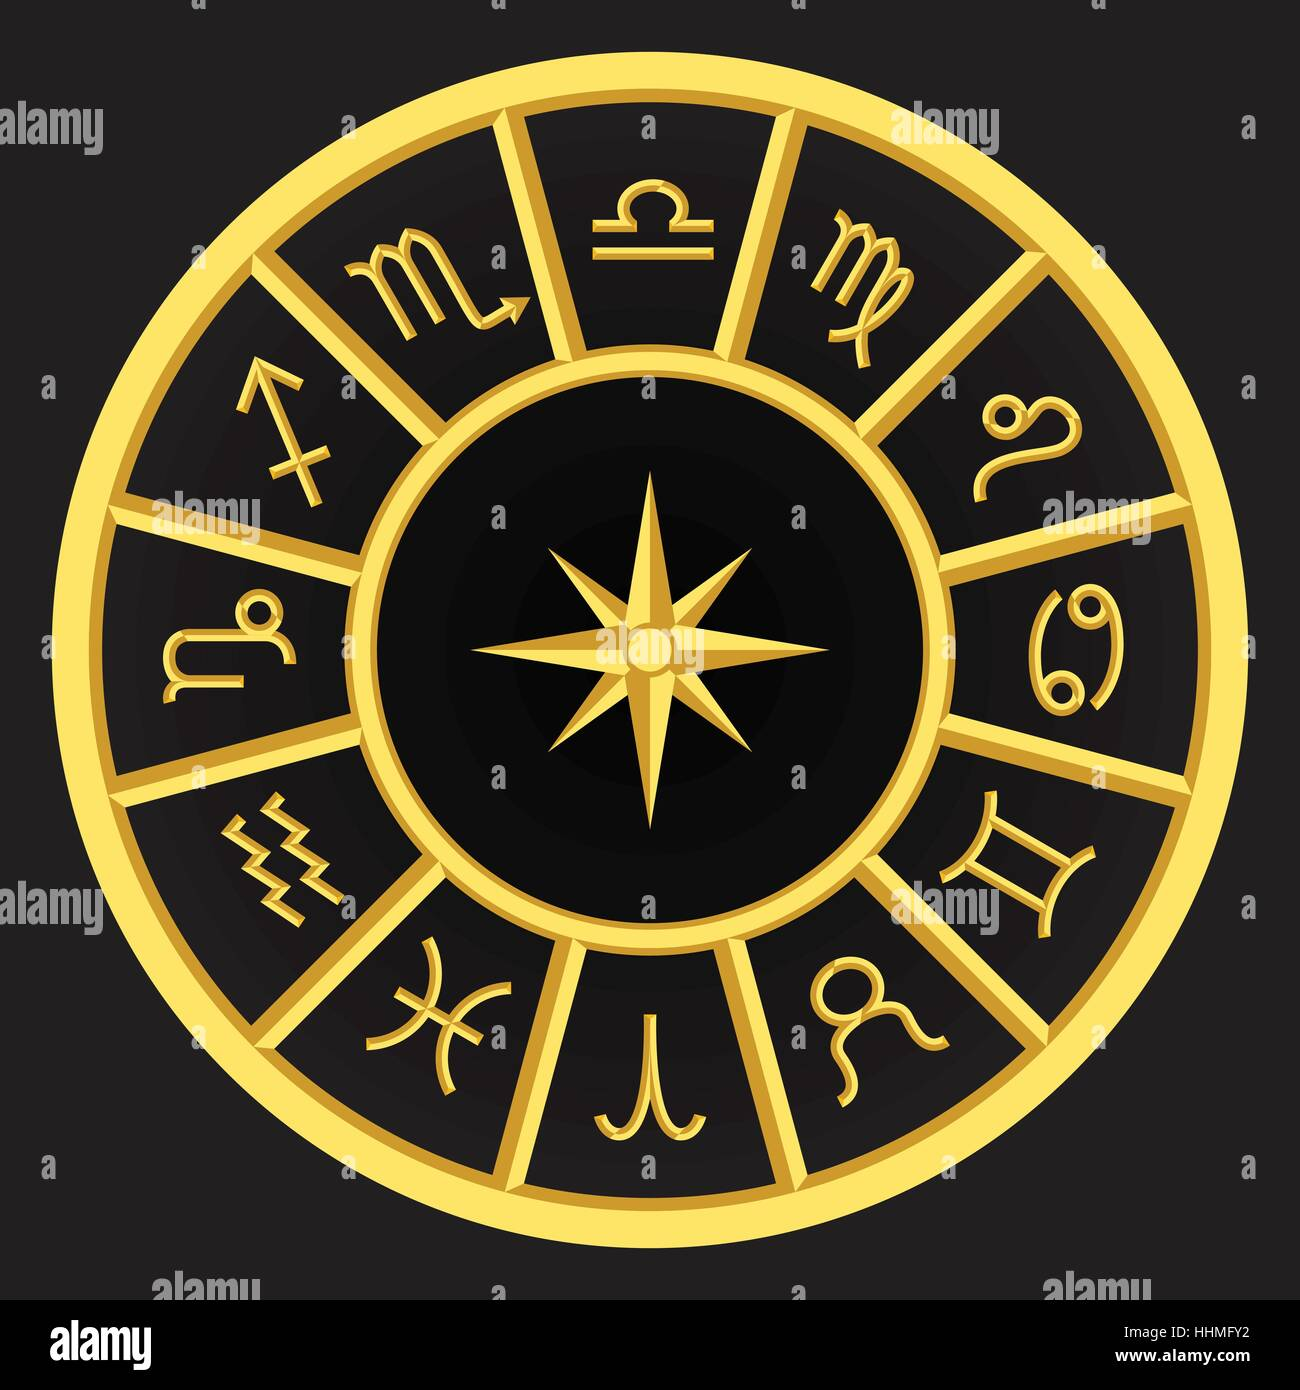 3f2da91bb golden zodiac symbols on golden circle , set of flat zodiac signs, 12 zodiac